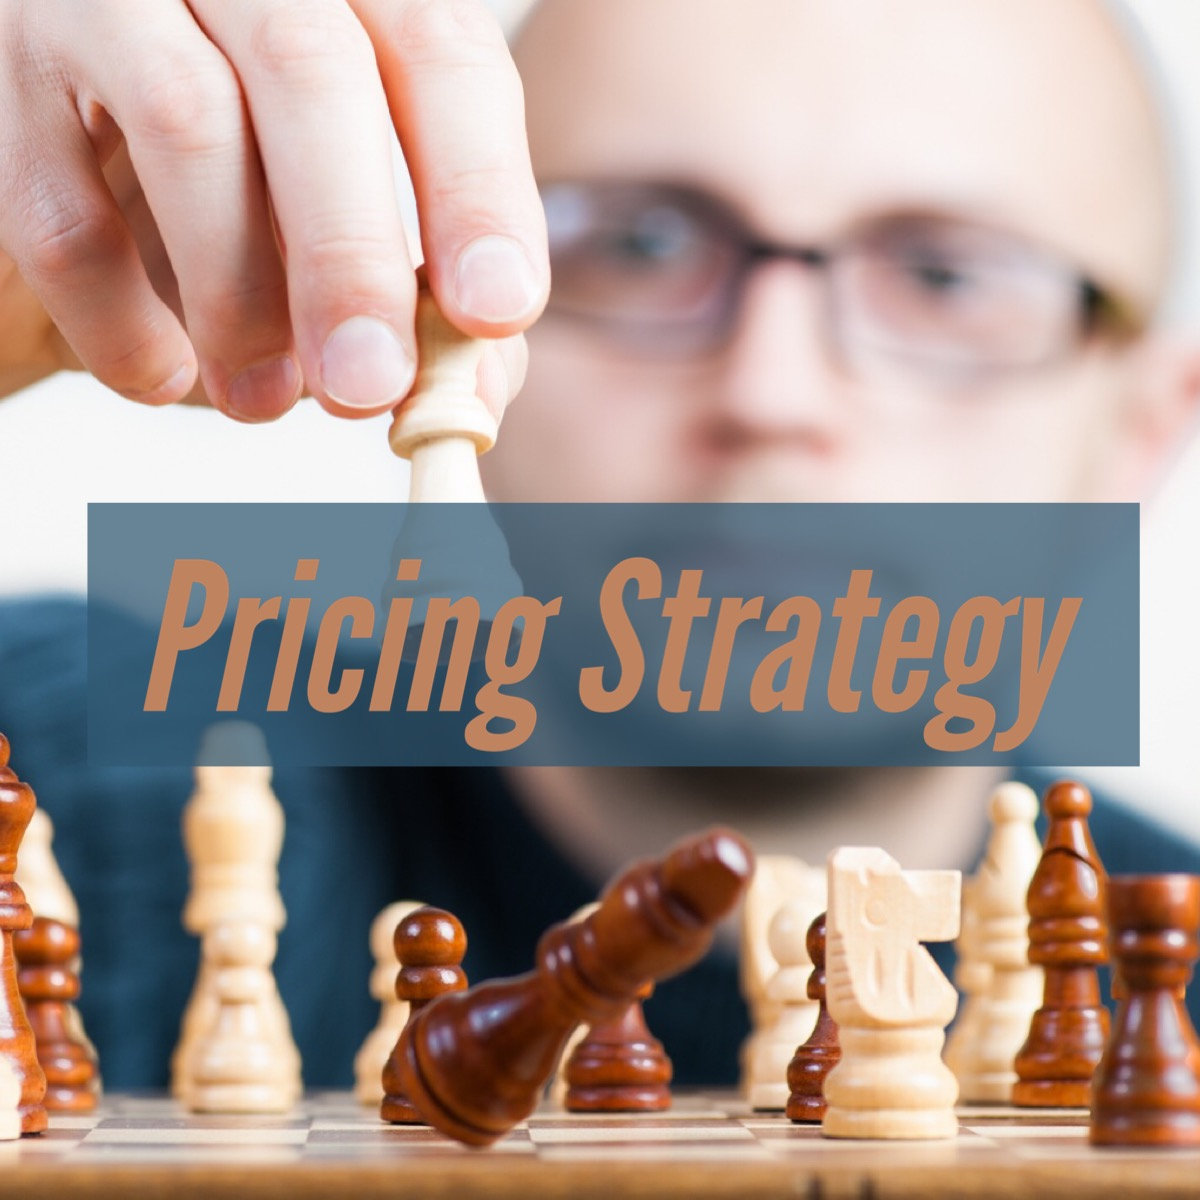 Commandments of Pricing Strategy